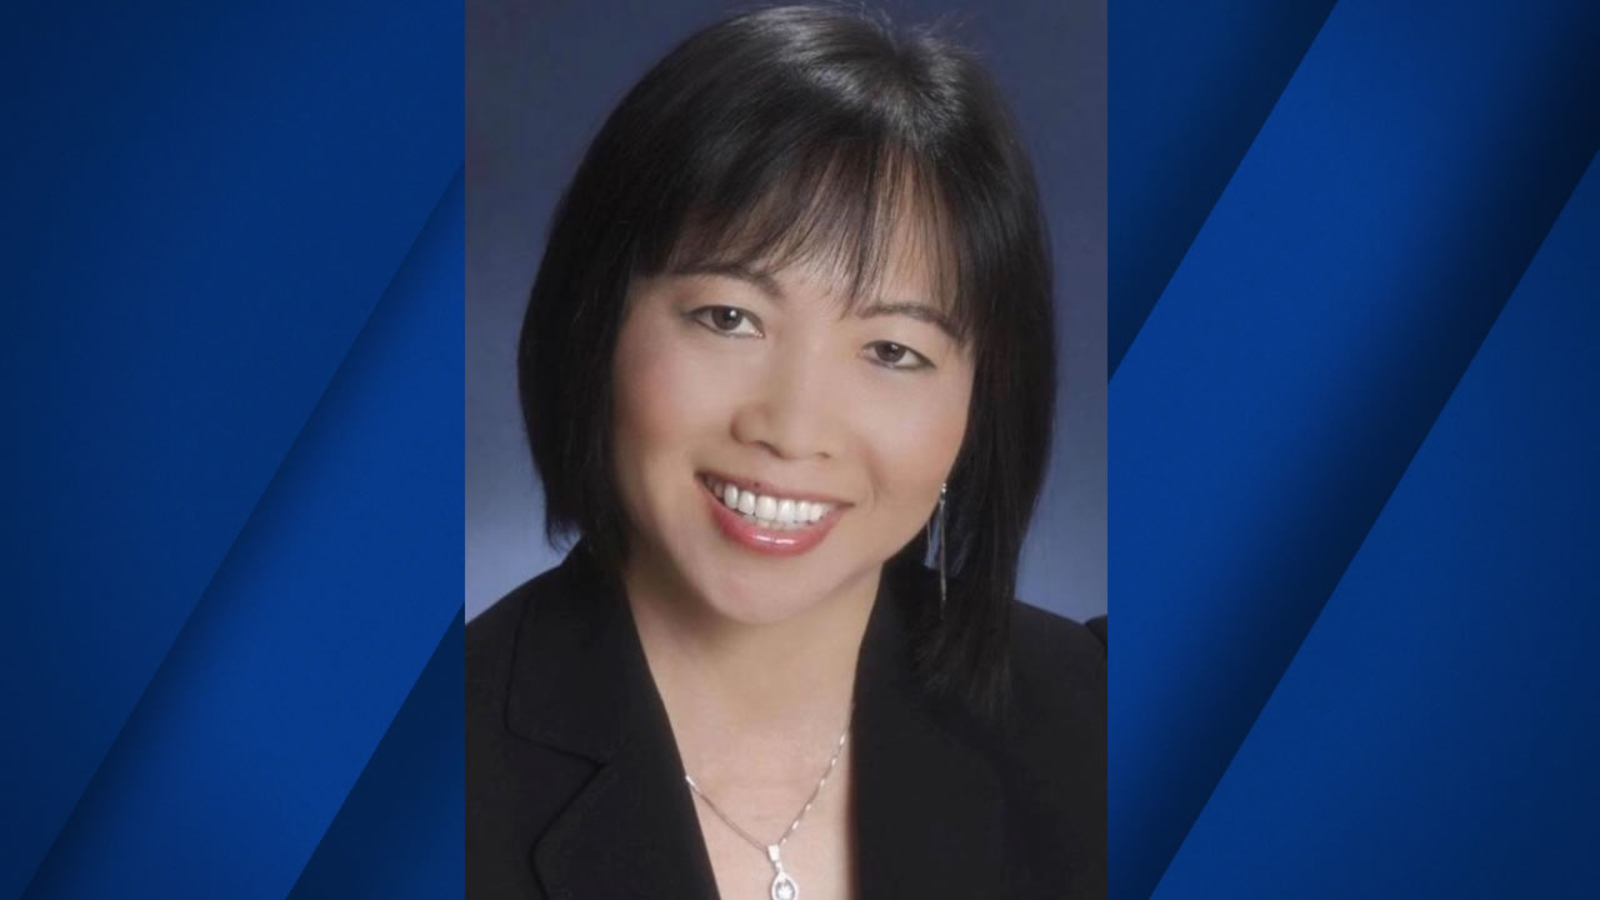 I-TEAM: Santa Clara Co. Sheriff's Captain Amy Le removed from job over barbecue grill